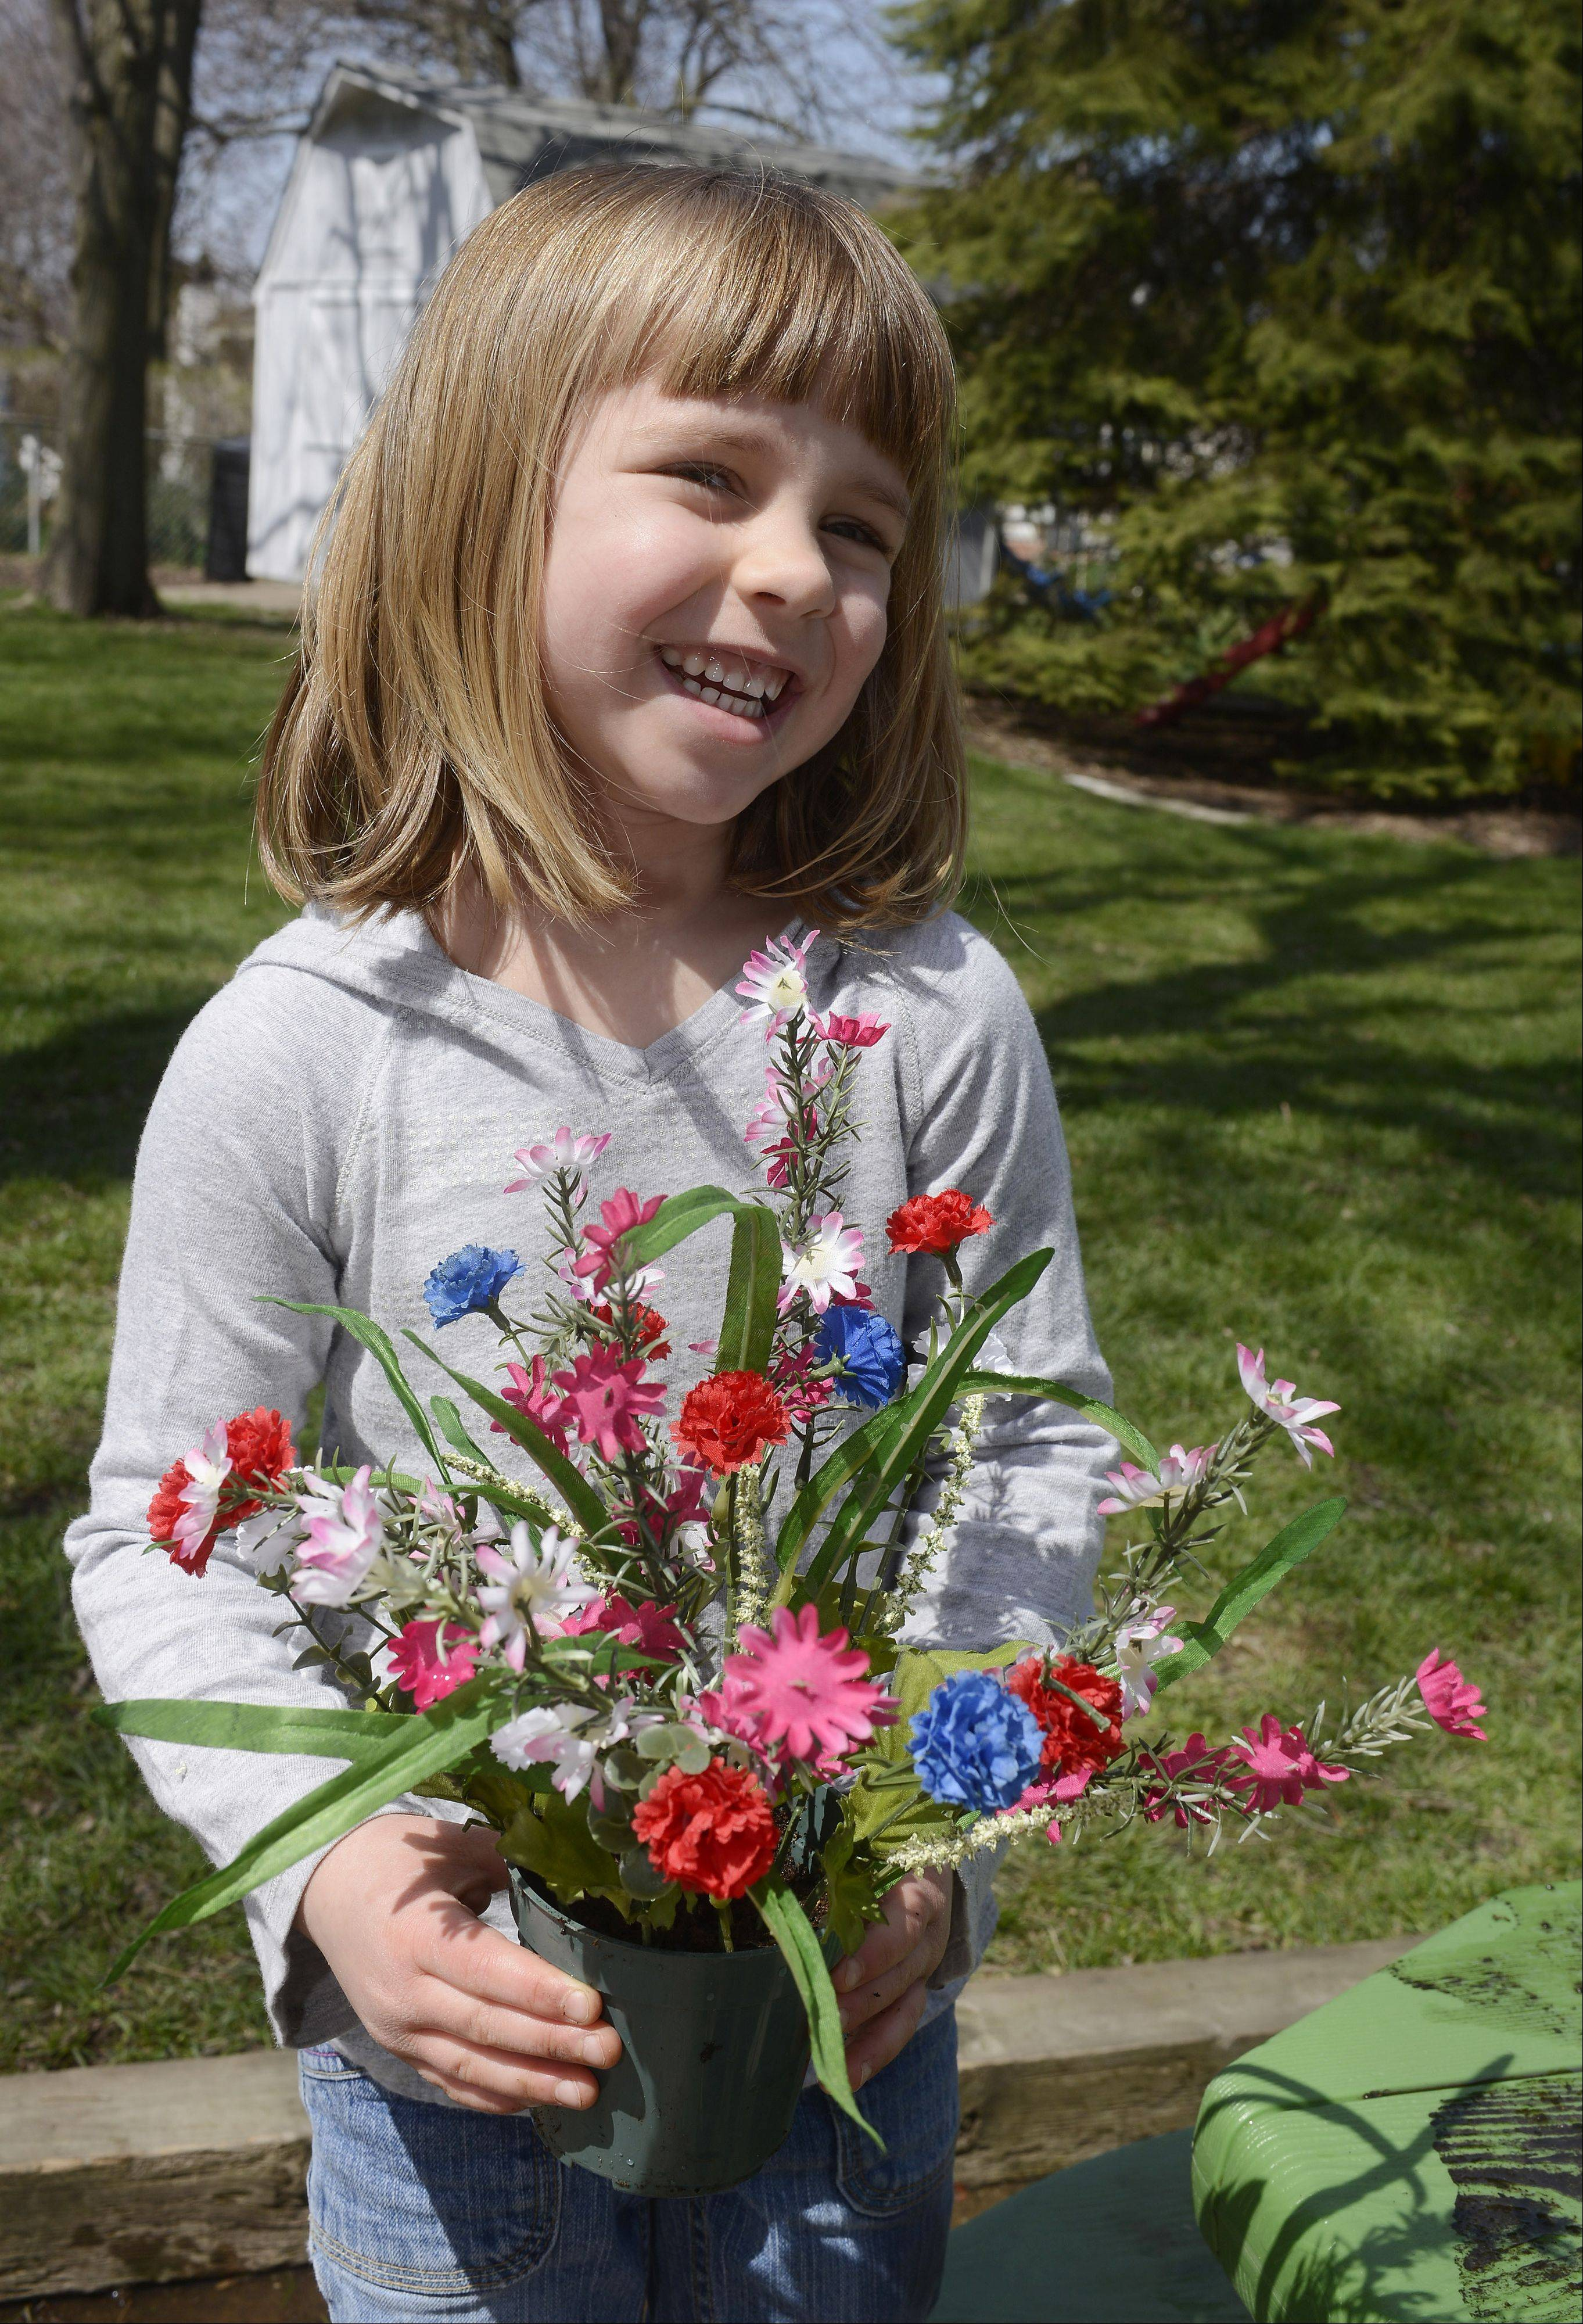 Lily Anderson, 4, smiles after placing artificial flowers in a pot of soil.